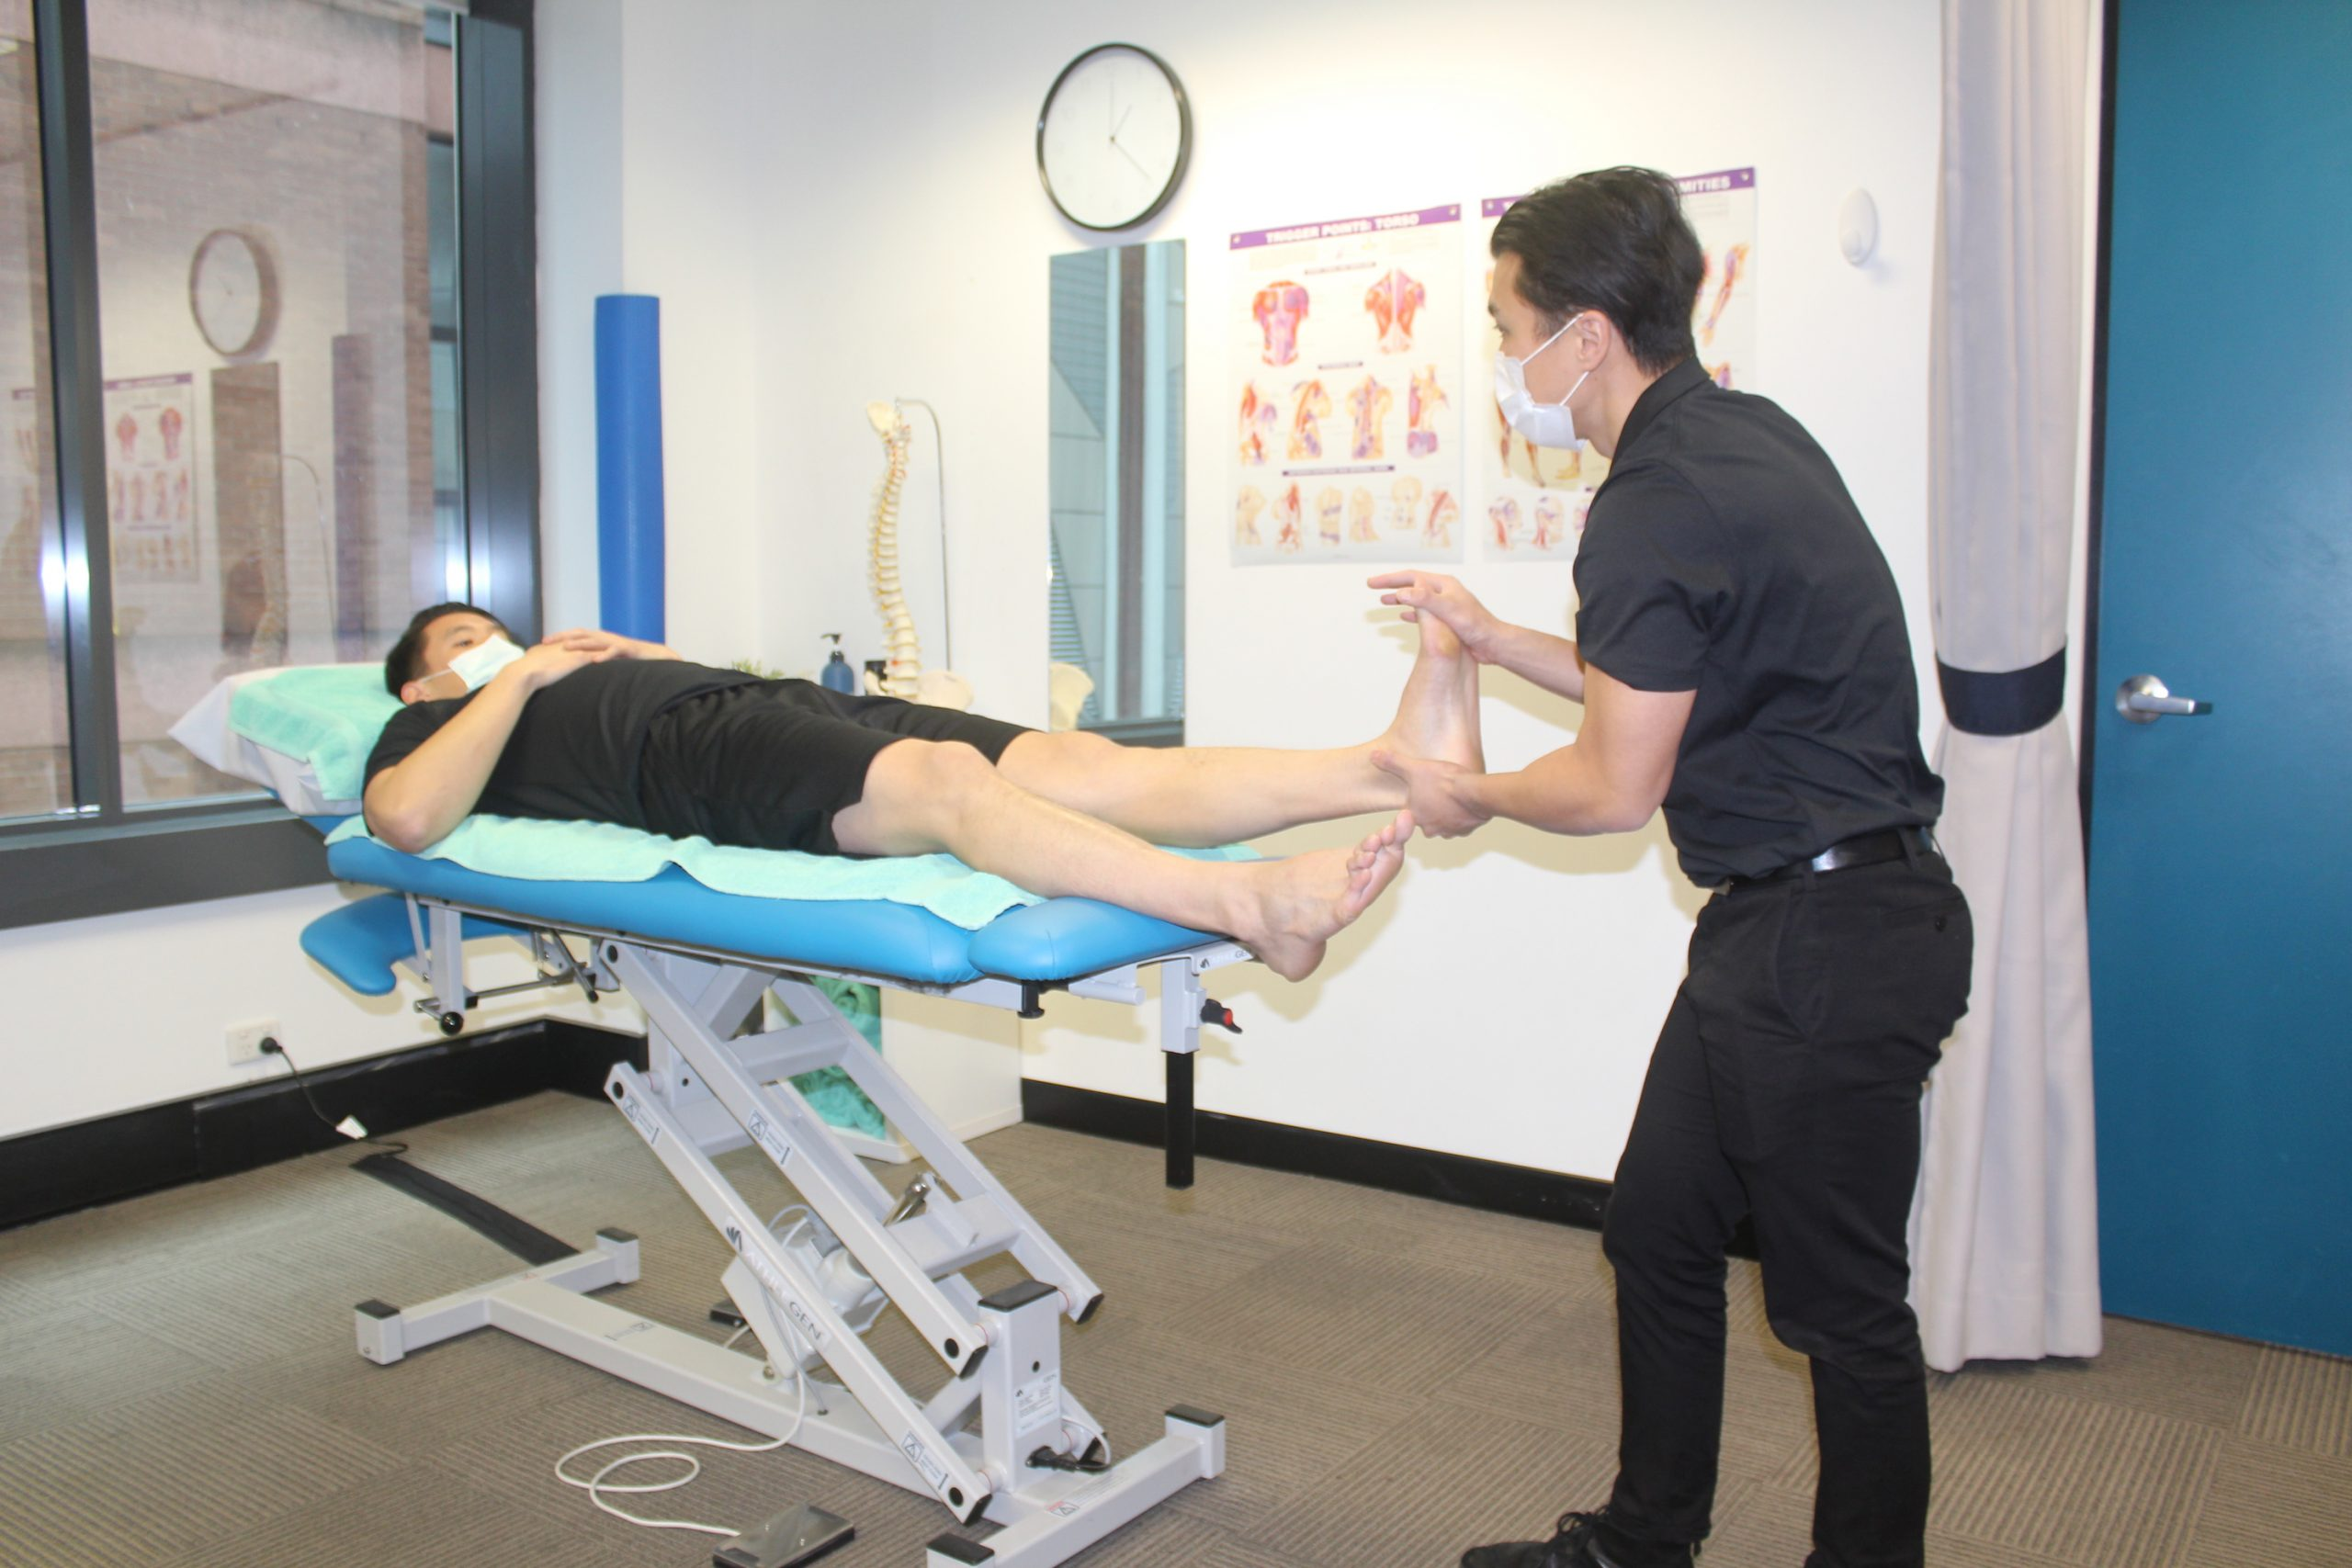 Supine Ankle Assessment